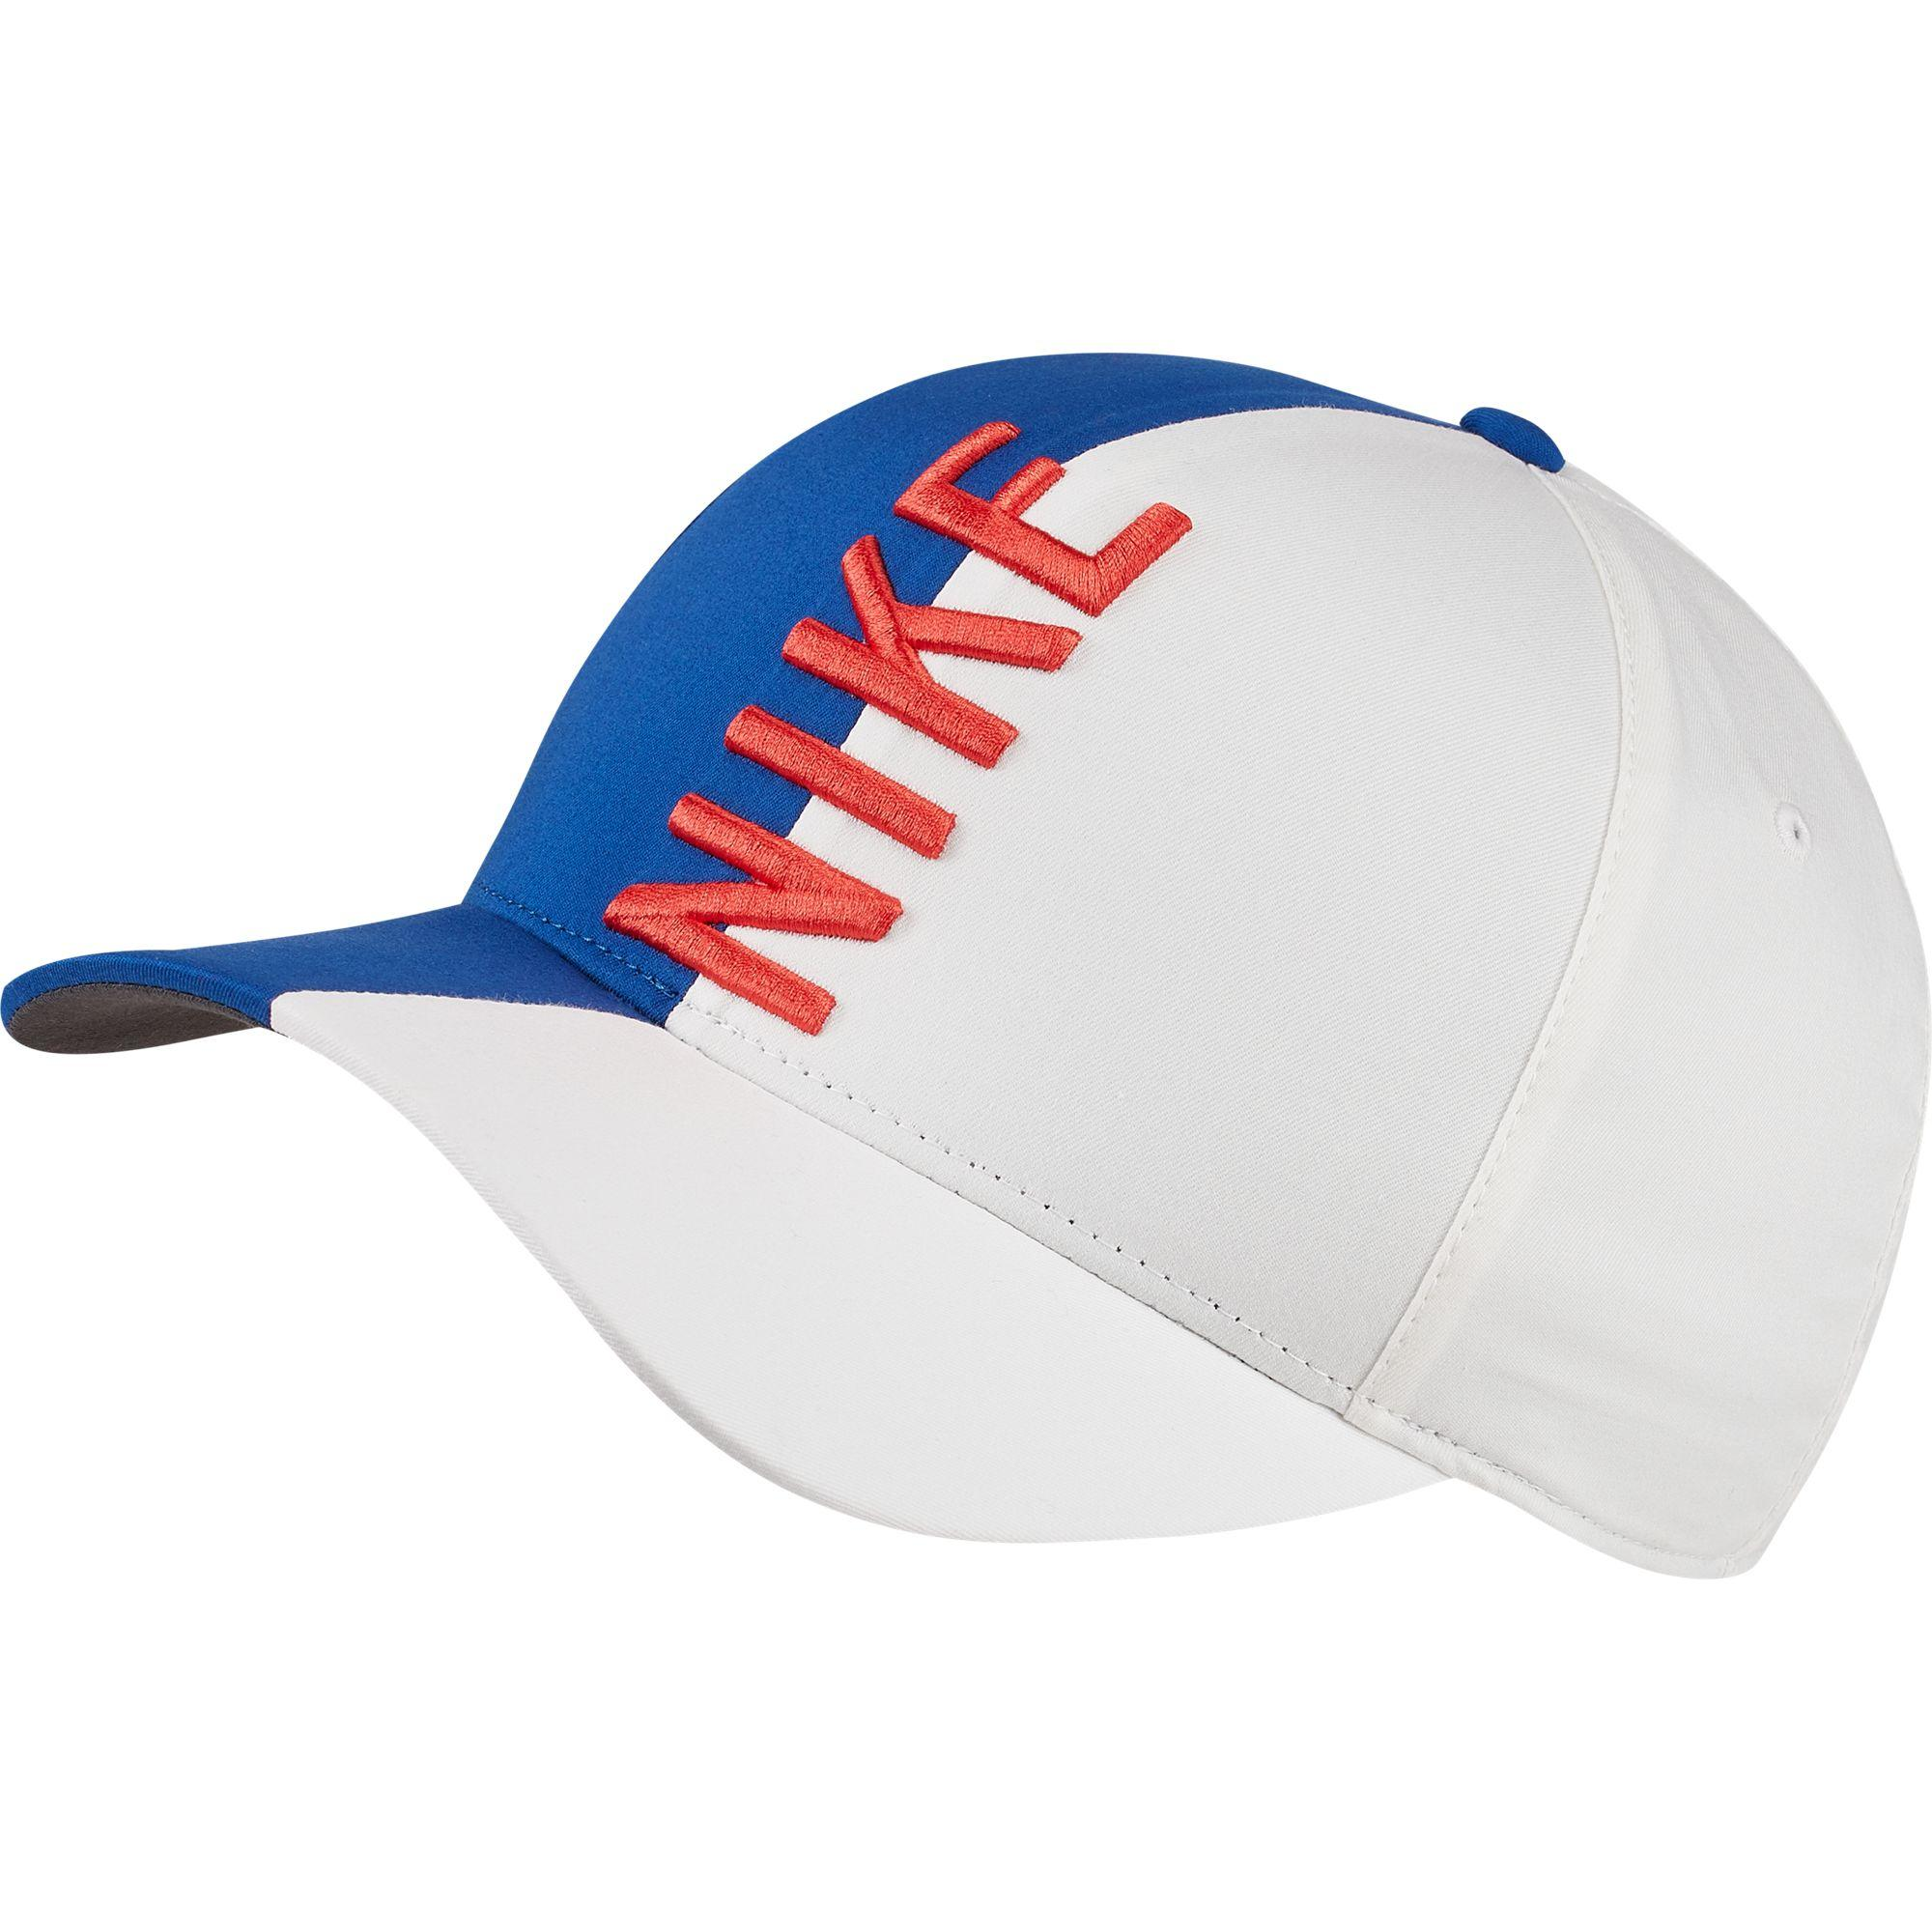 0cb455a518a88 Nike Aerobill Classic99 Golf Hat in Blue for Men - Lyst